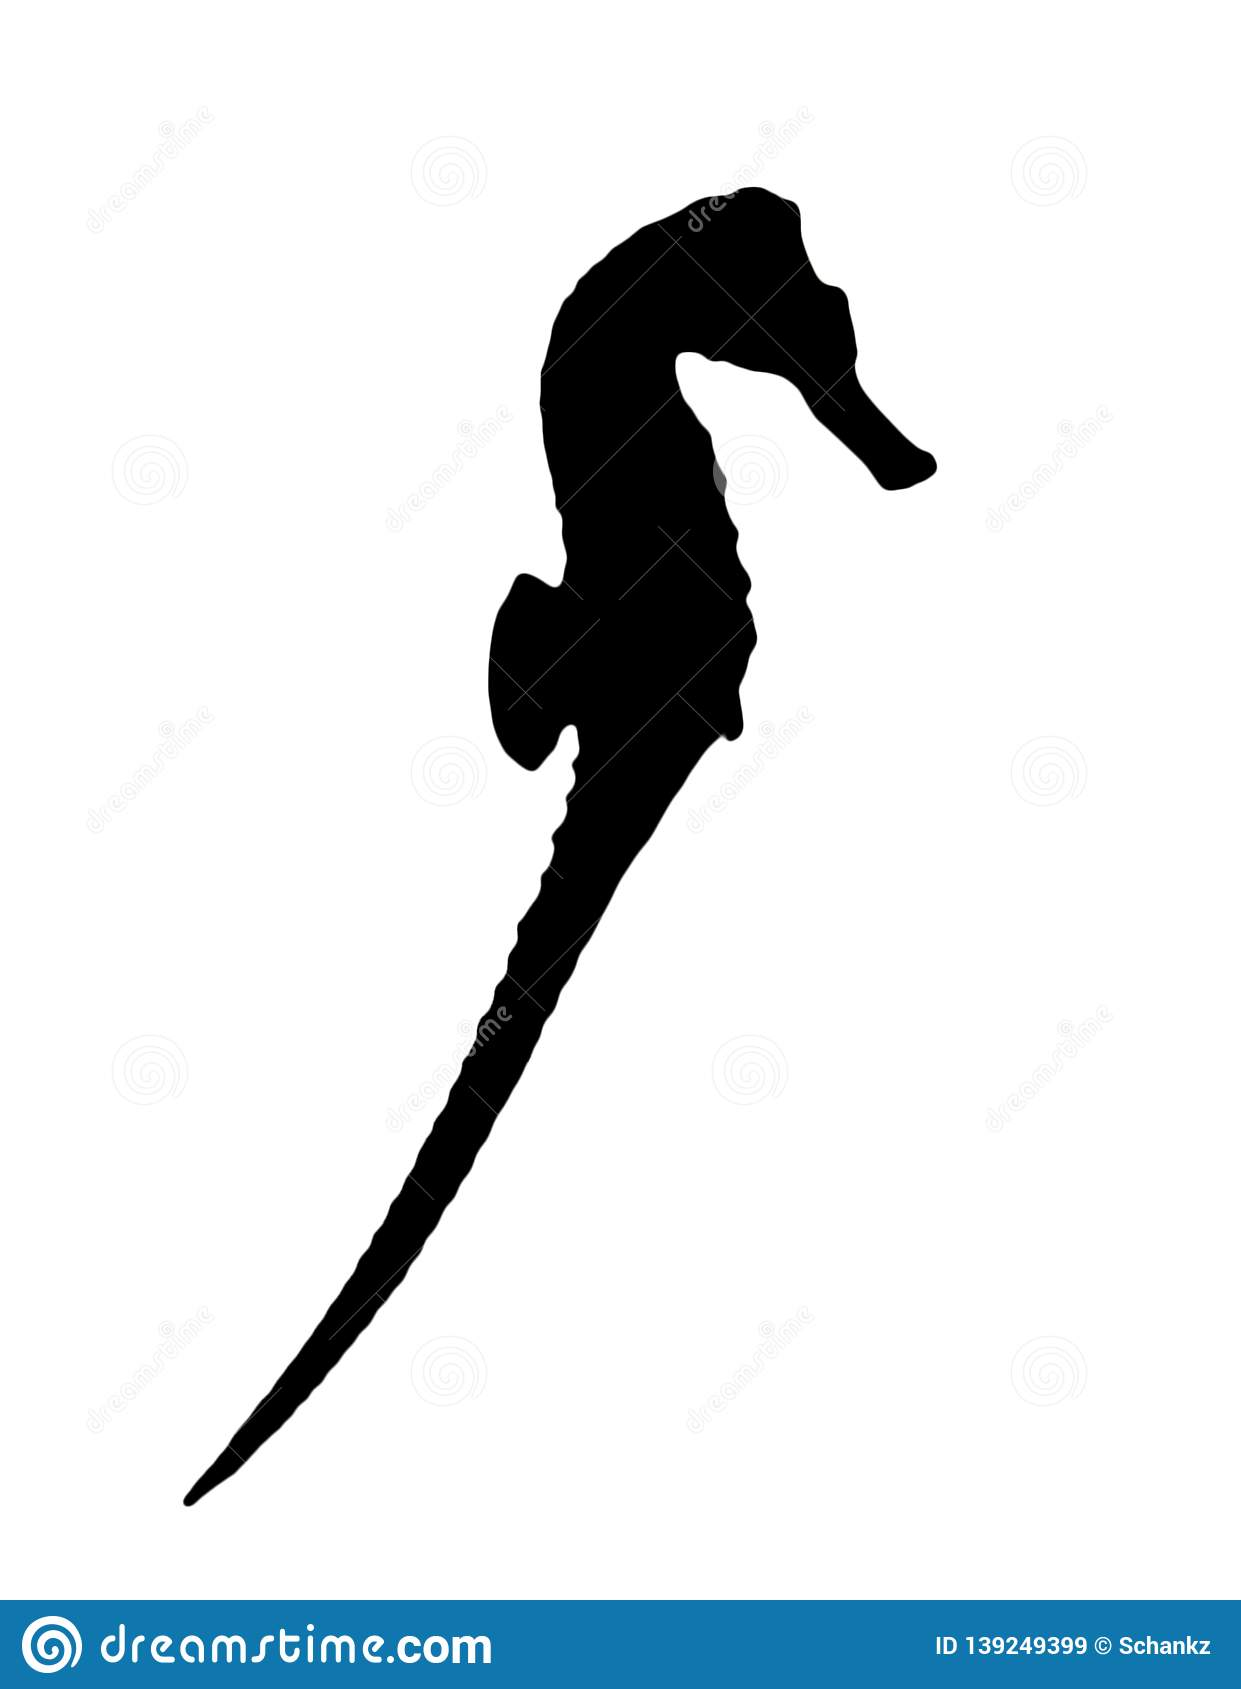 Silhouette of sea horse on white background